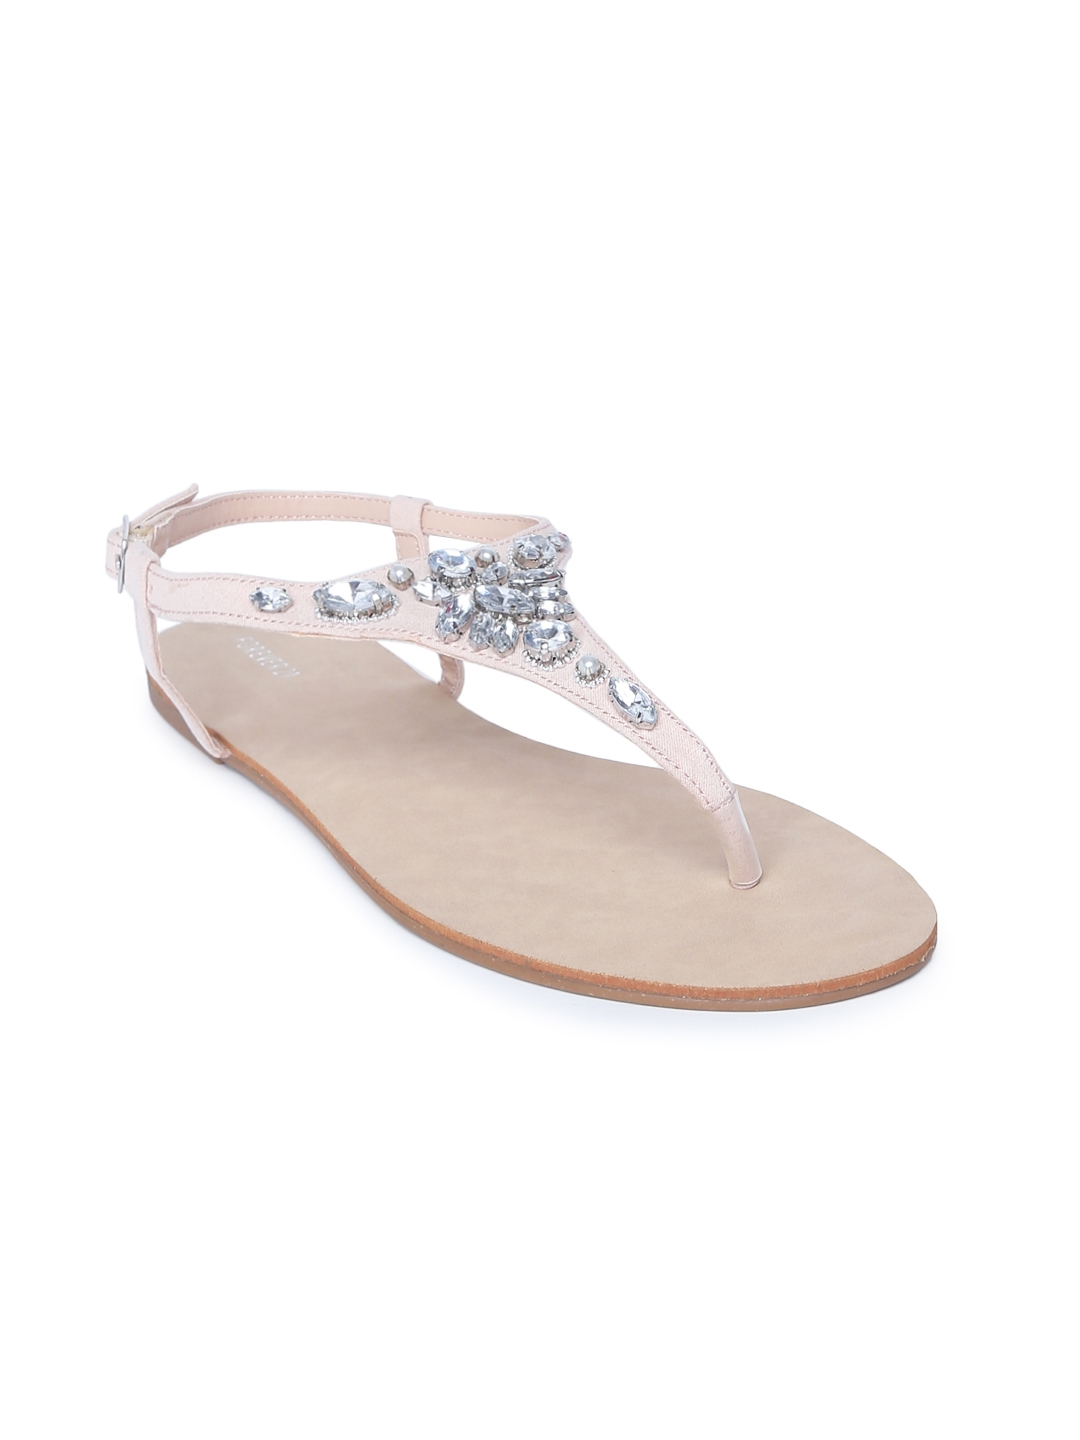 171471a0b Buy FOREVER 21 Women Nude Coloured Embellished T Strap Flats - Flats ...